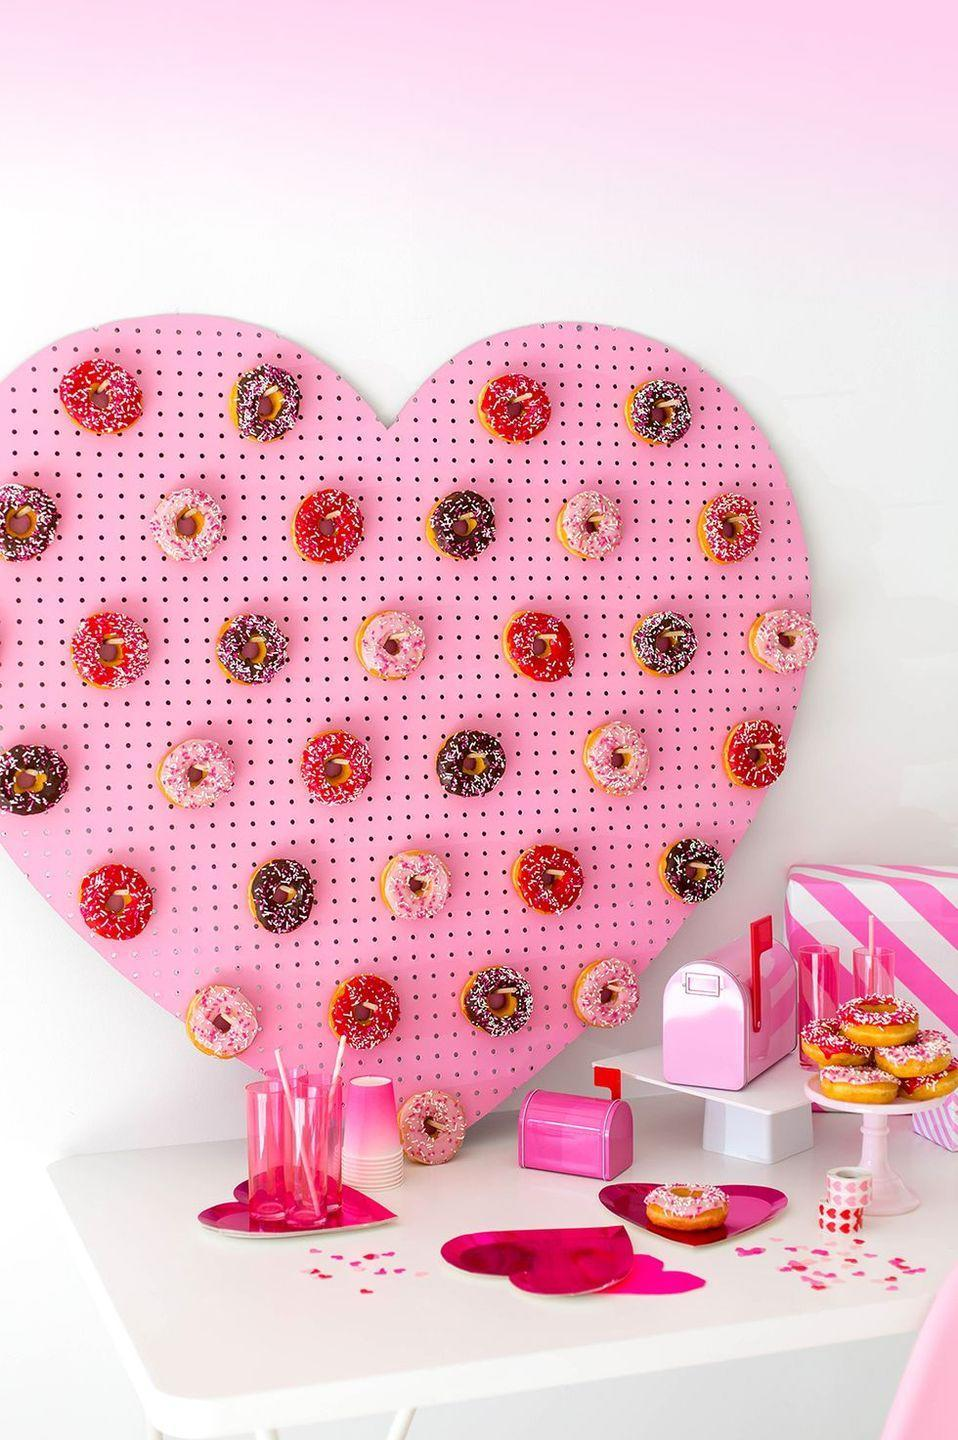 "<p>Make your home a romantic oasis by decking it out with sweet heart-shaped items. We love this donut peg wall — treats + decor = double win! — but there are so many incredible <a href=""https://www.goodhousekeeping.com/holidays/valentines-day-ideas/g30174656/valentines-day-decor-ideas/"" rel=""nofollow noopener"" target=""_blank"" data-ylk=""slk:DIY Valentines' Day decorations"" class=""link rapid-noclick-resp"">DIY Valentines' Day decorations</a> that you can whip up in no time. </p><p><em><a href=""http://www.awwsam.com/2018/02/diy-heart-donut-pegboard.html"" rel=""nofollow noopener"" target=""_blank"" data-ylk=""slk:Get the tutorial at Aww Sam »"" class=""link rapid-noclick-resp"">Get the tutorial at Aww Sam »</a></em></p>"